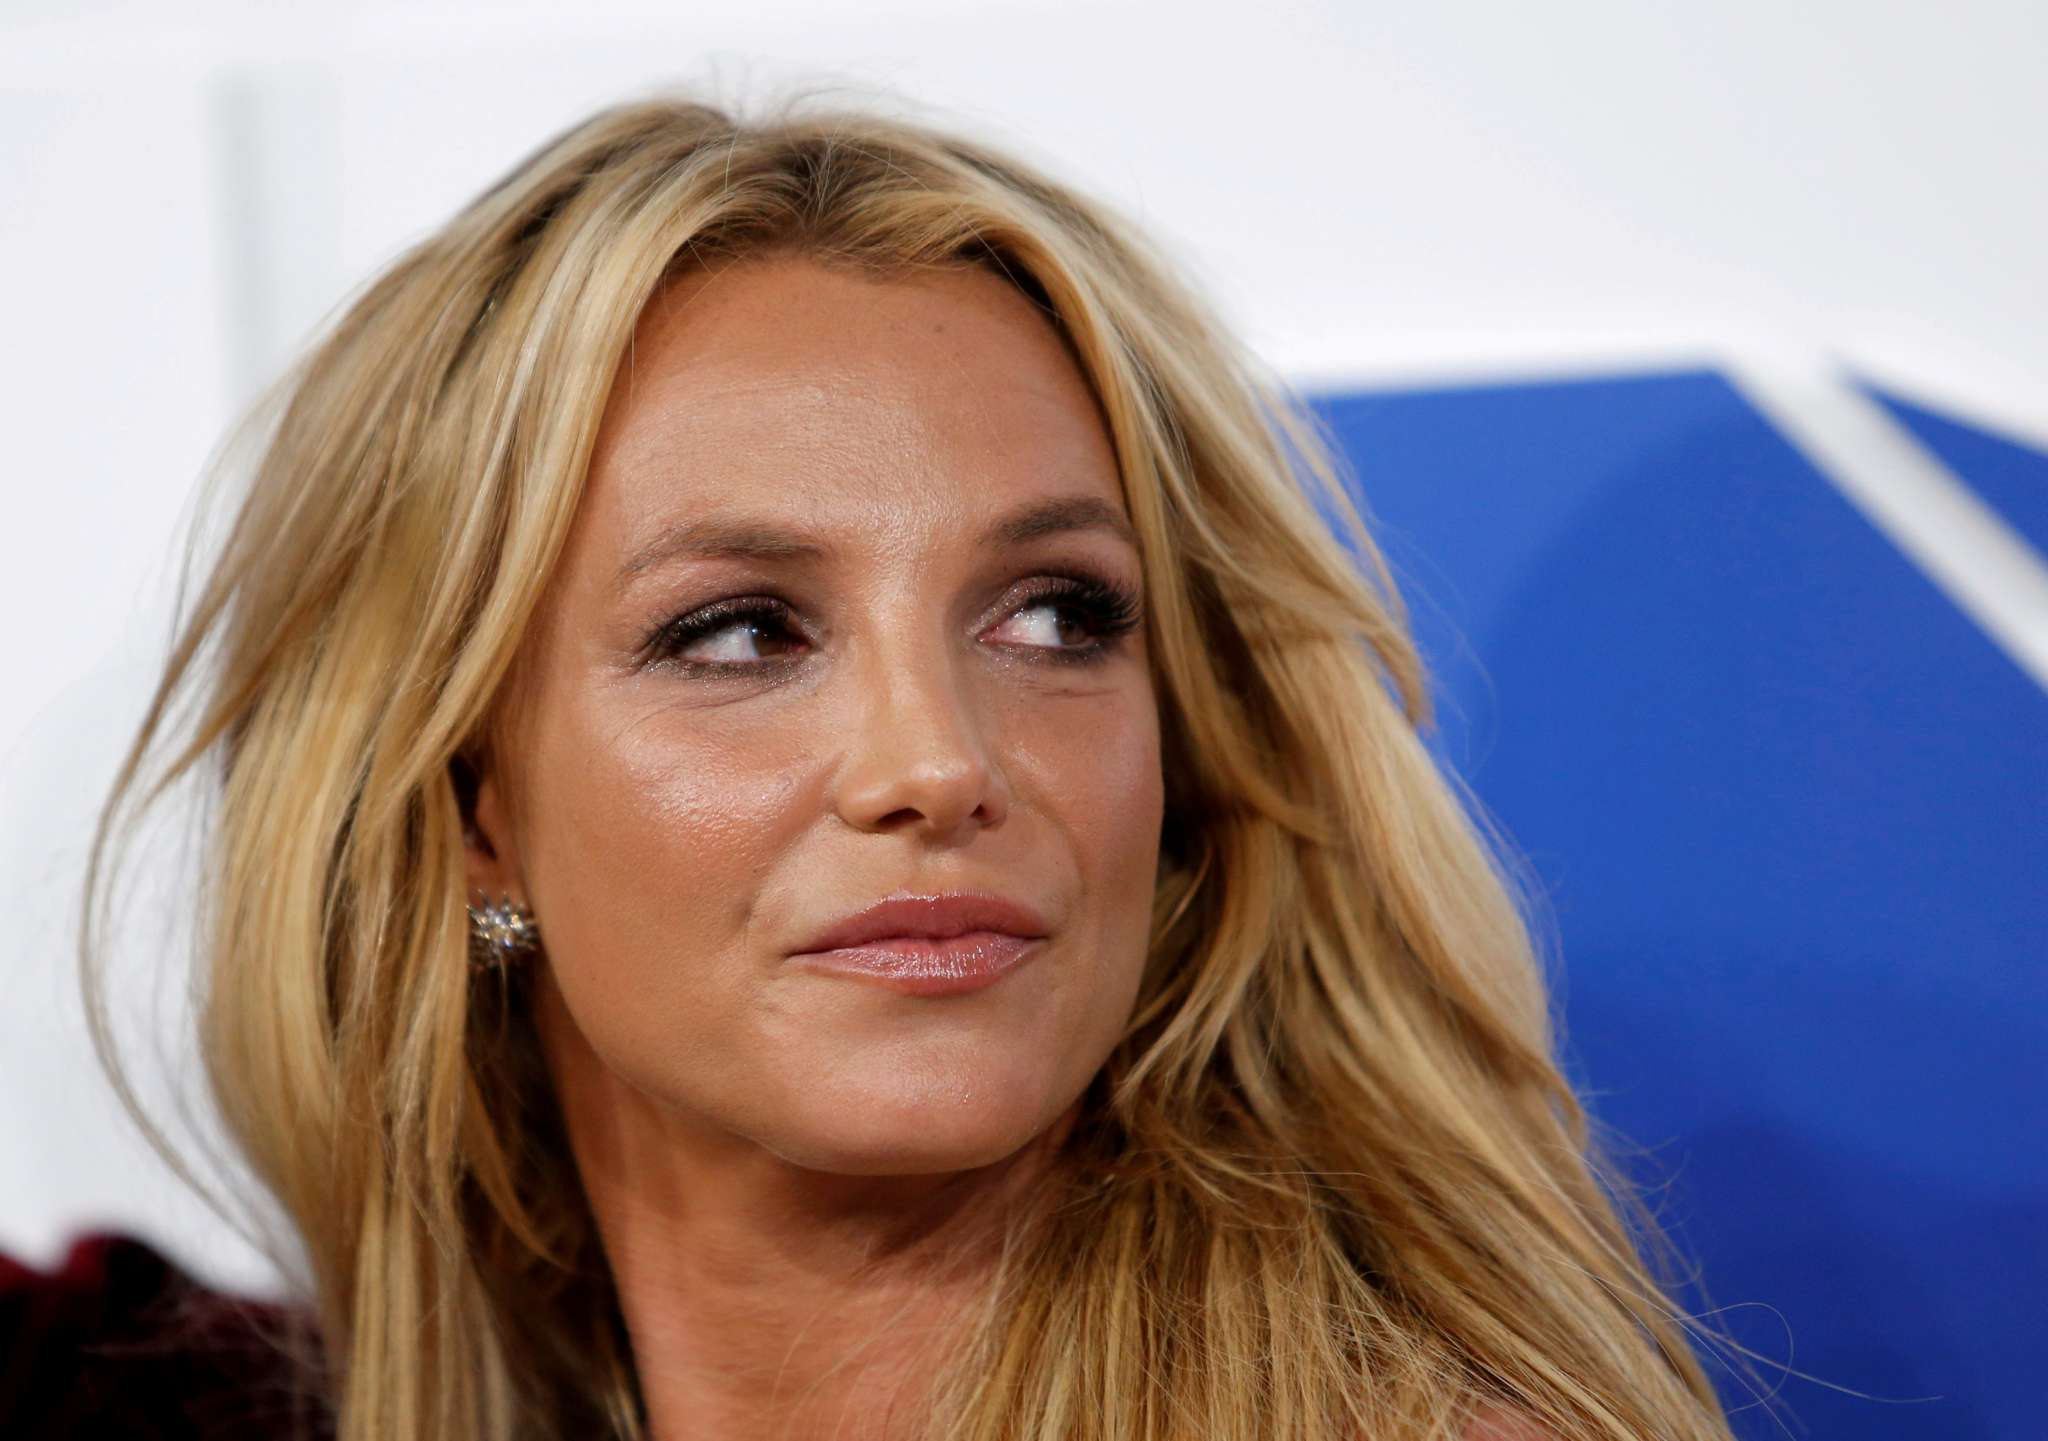 """""""britney-spears-is-reportedly-relieved-after-opening-up-publicly-about-her-conservatorship-nightmare-details"""""""